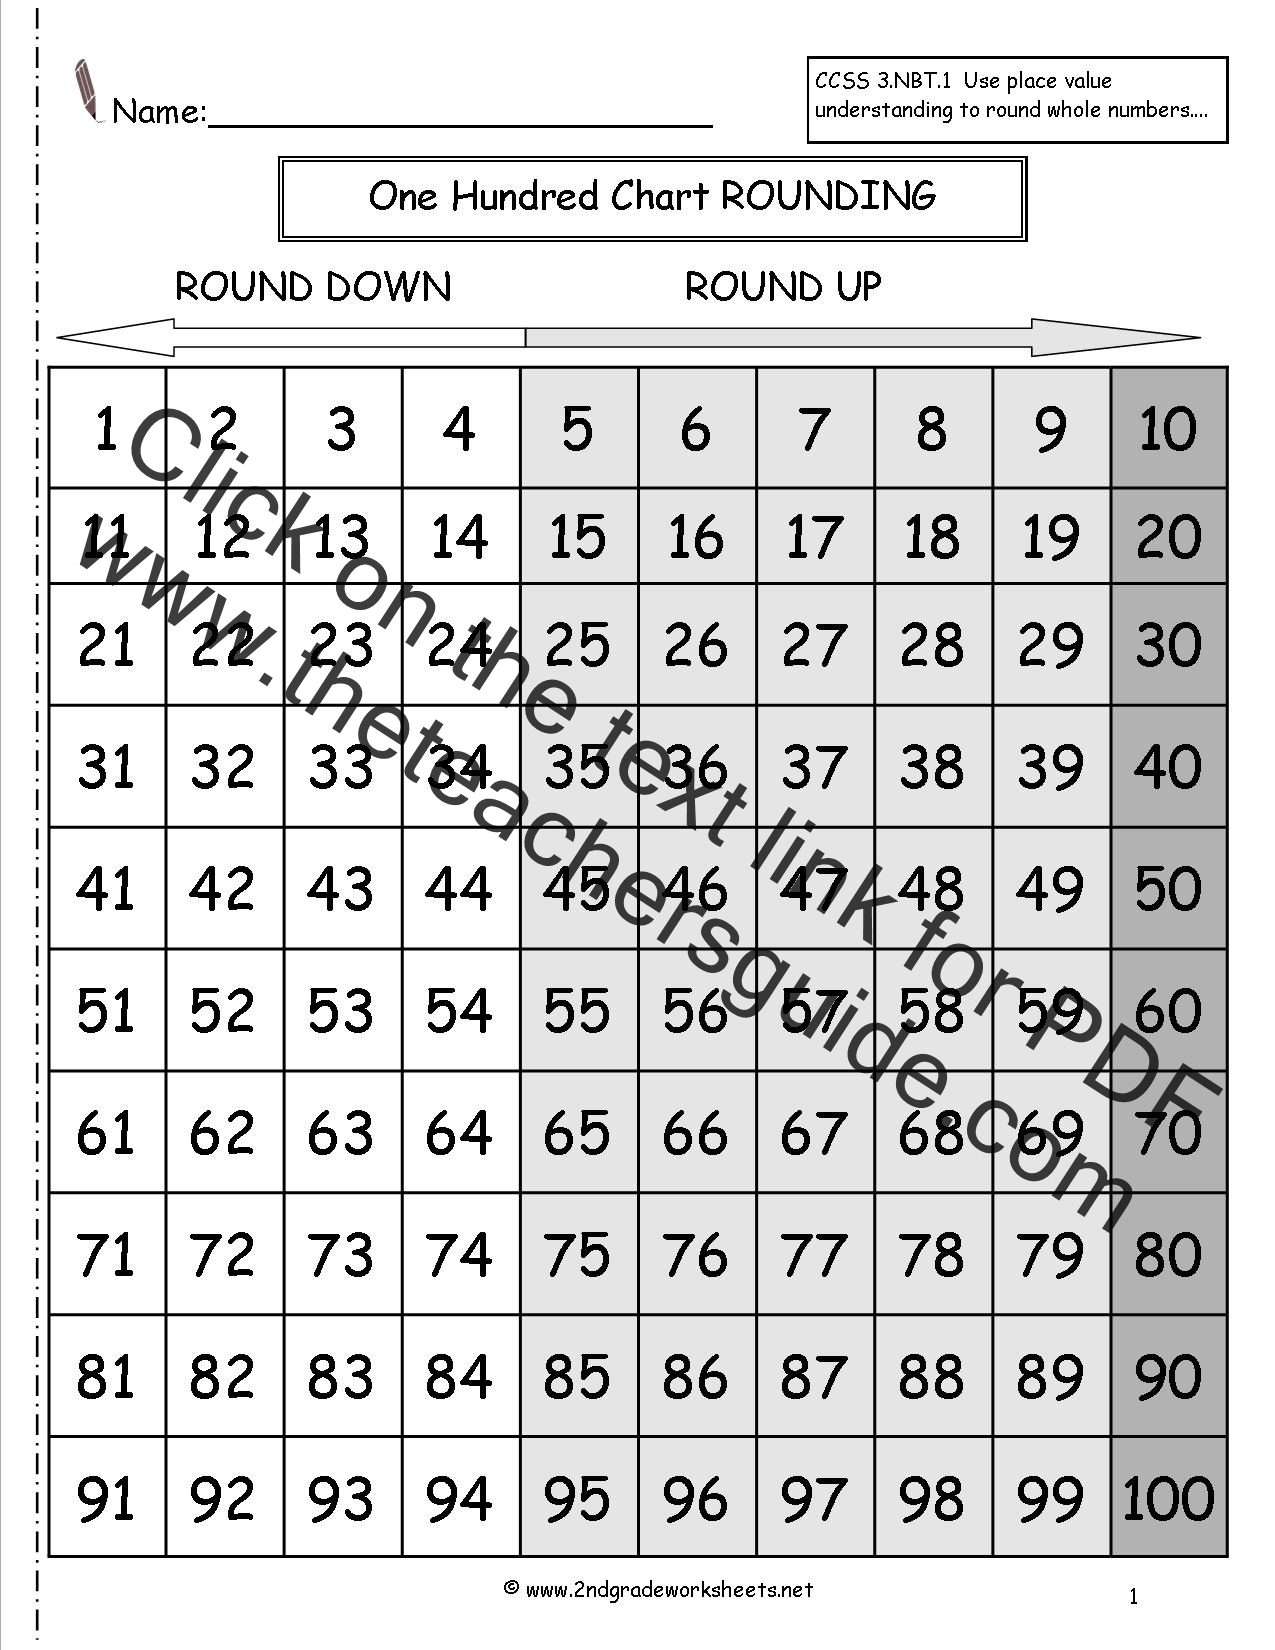 Free math worksheets and printouts rounding numbers worksheets robcynllc Choice Image